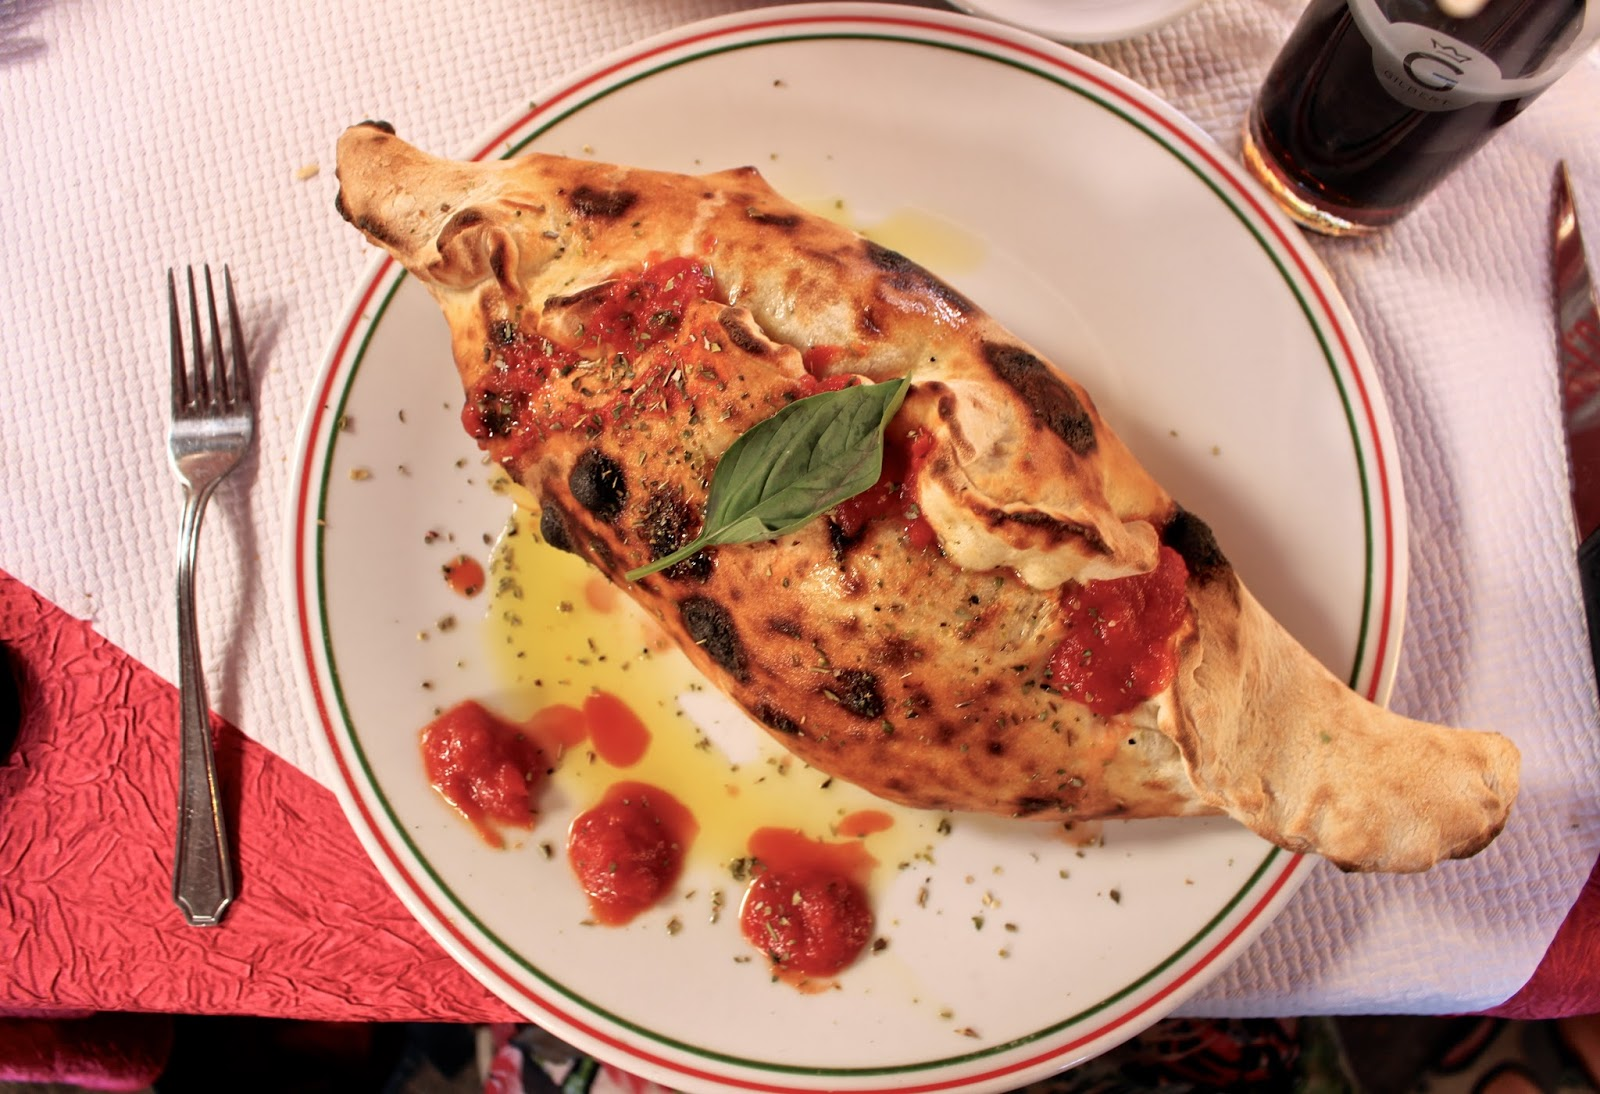 Calzone served at La Roma in Saint-Raphaël